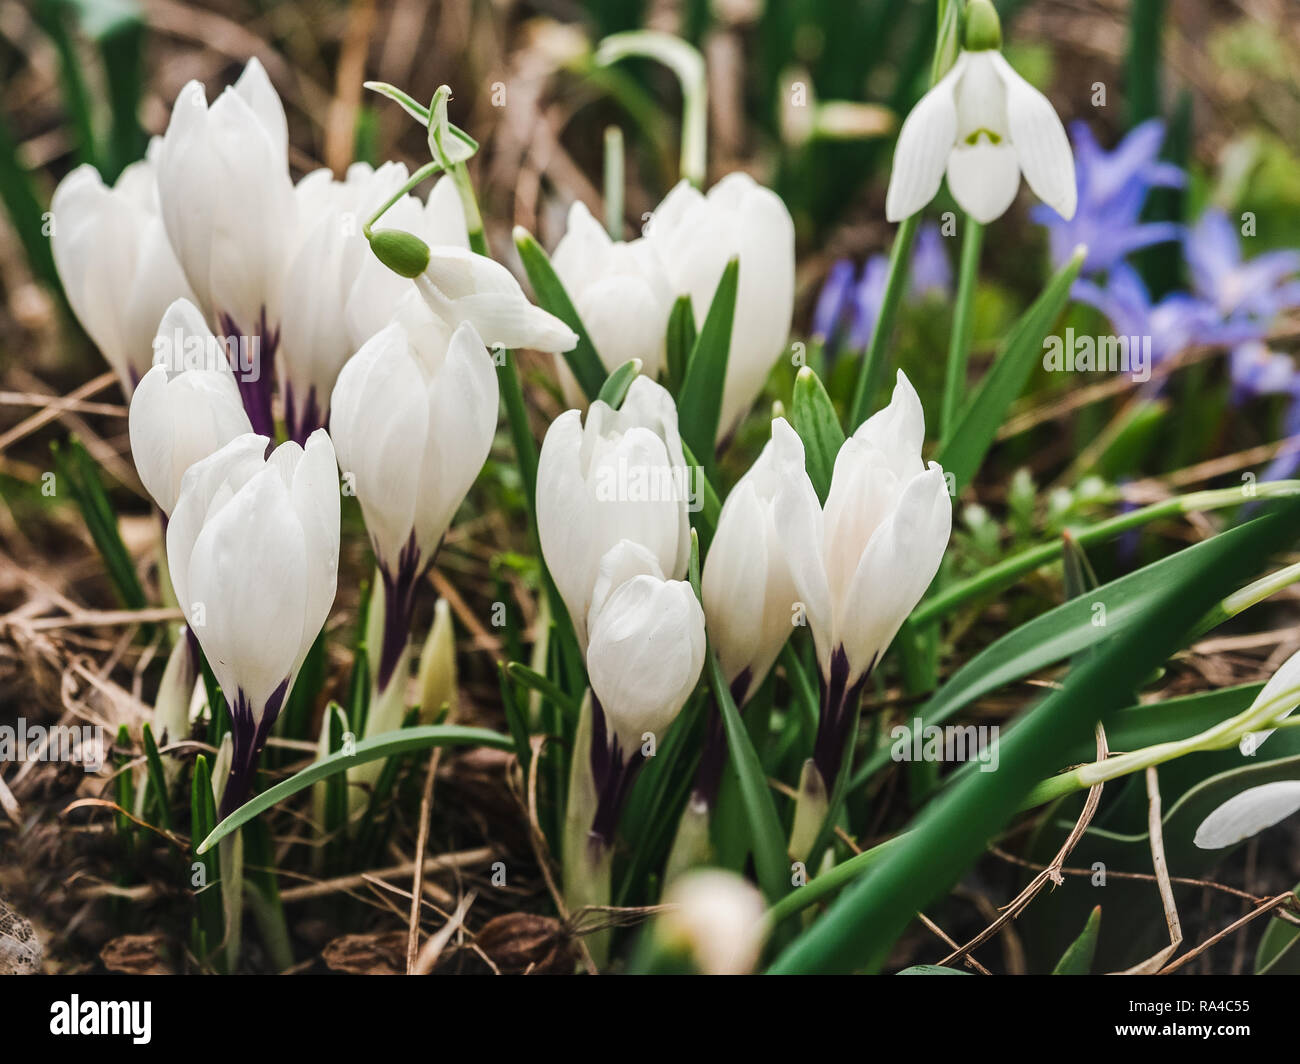 Early, bright, spring crocus and scilla flowers on the background of last year's grass Stock Photo